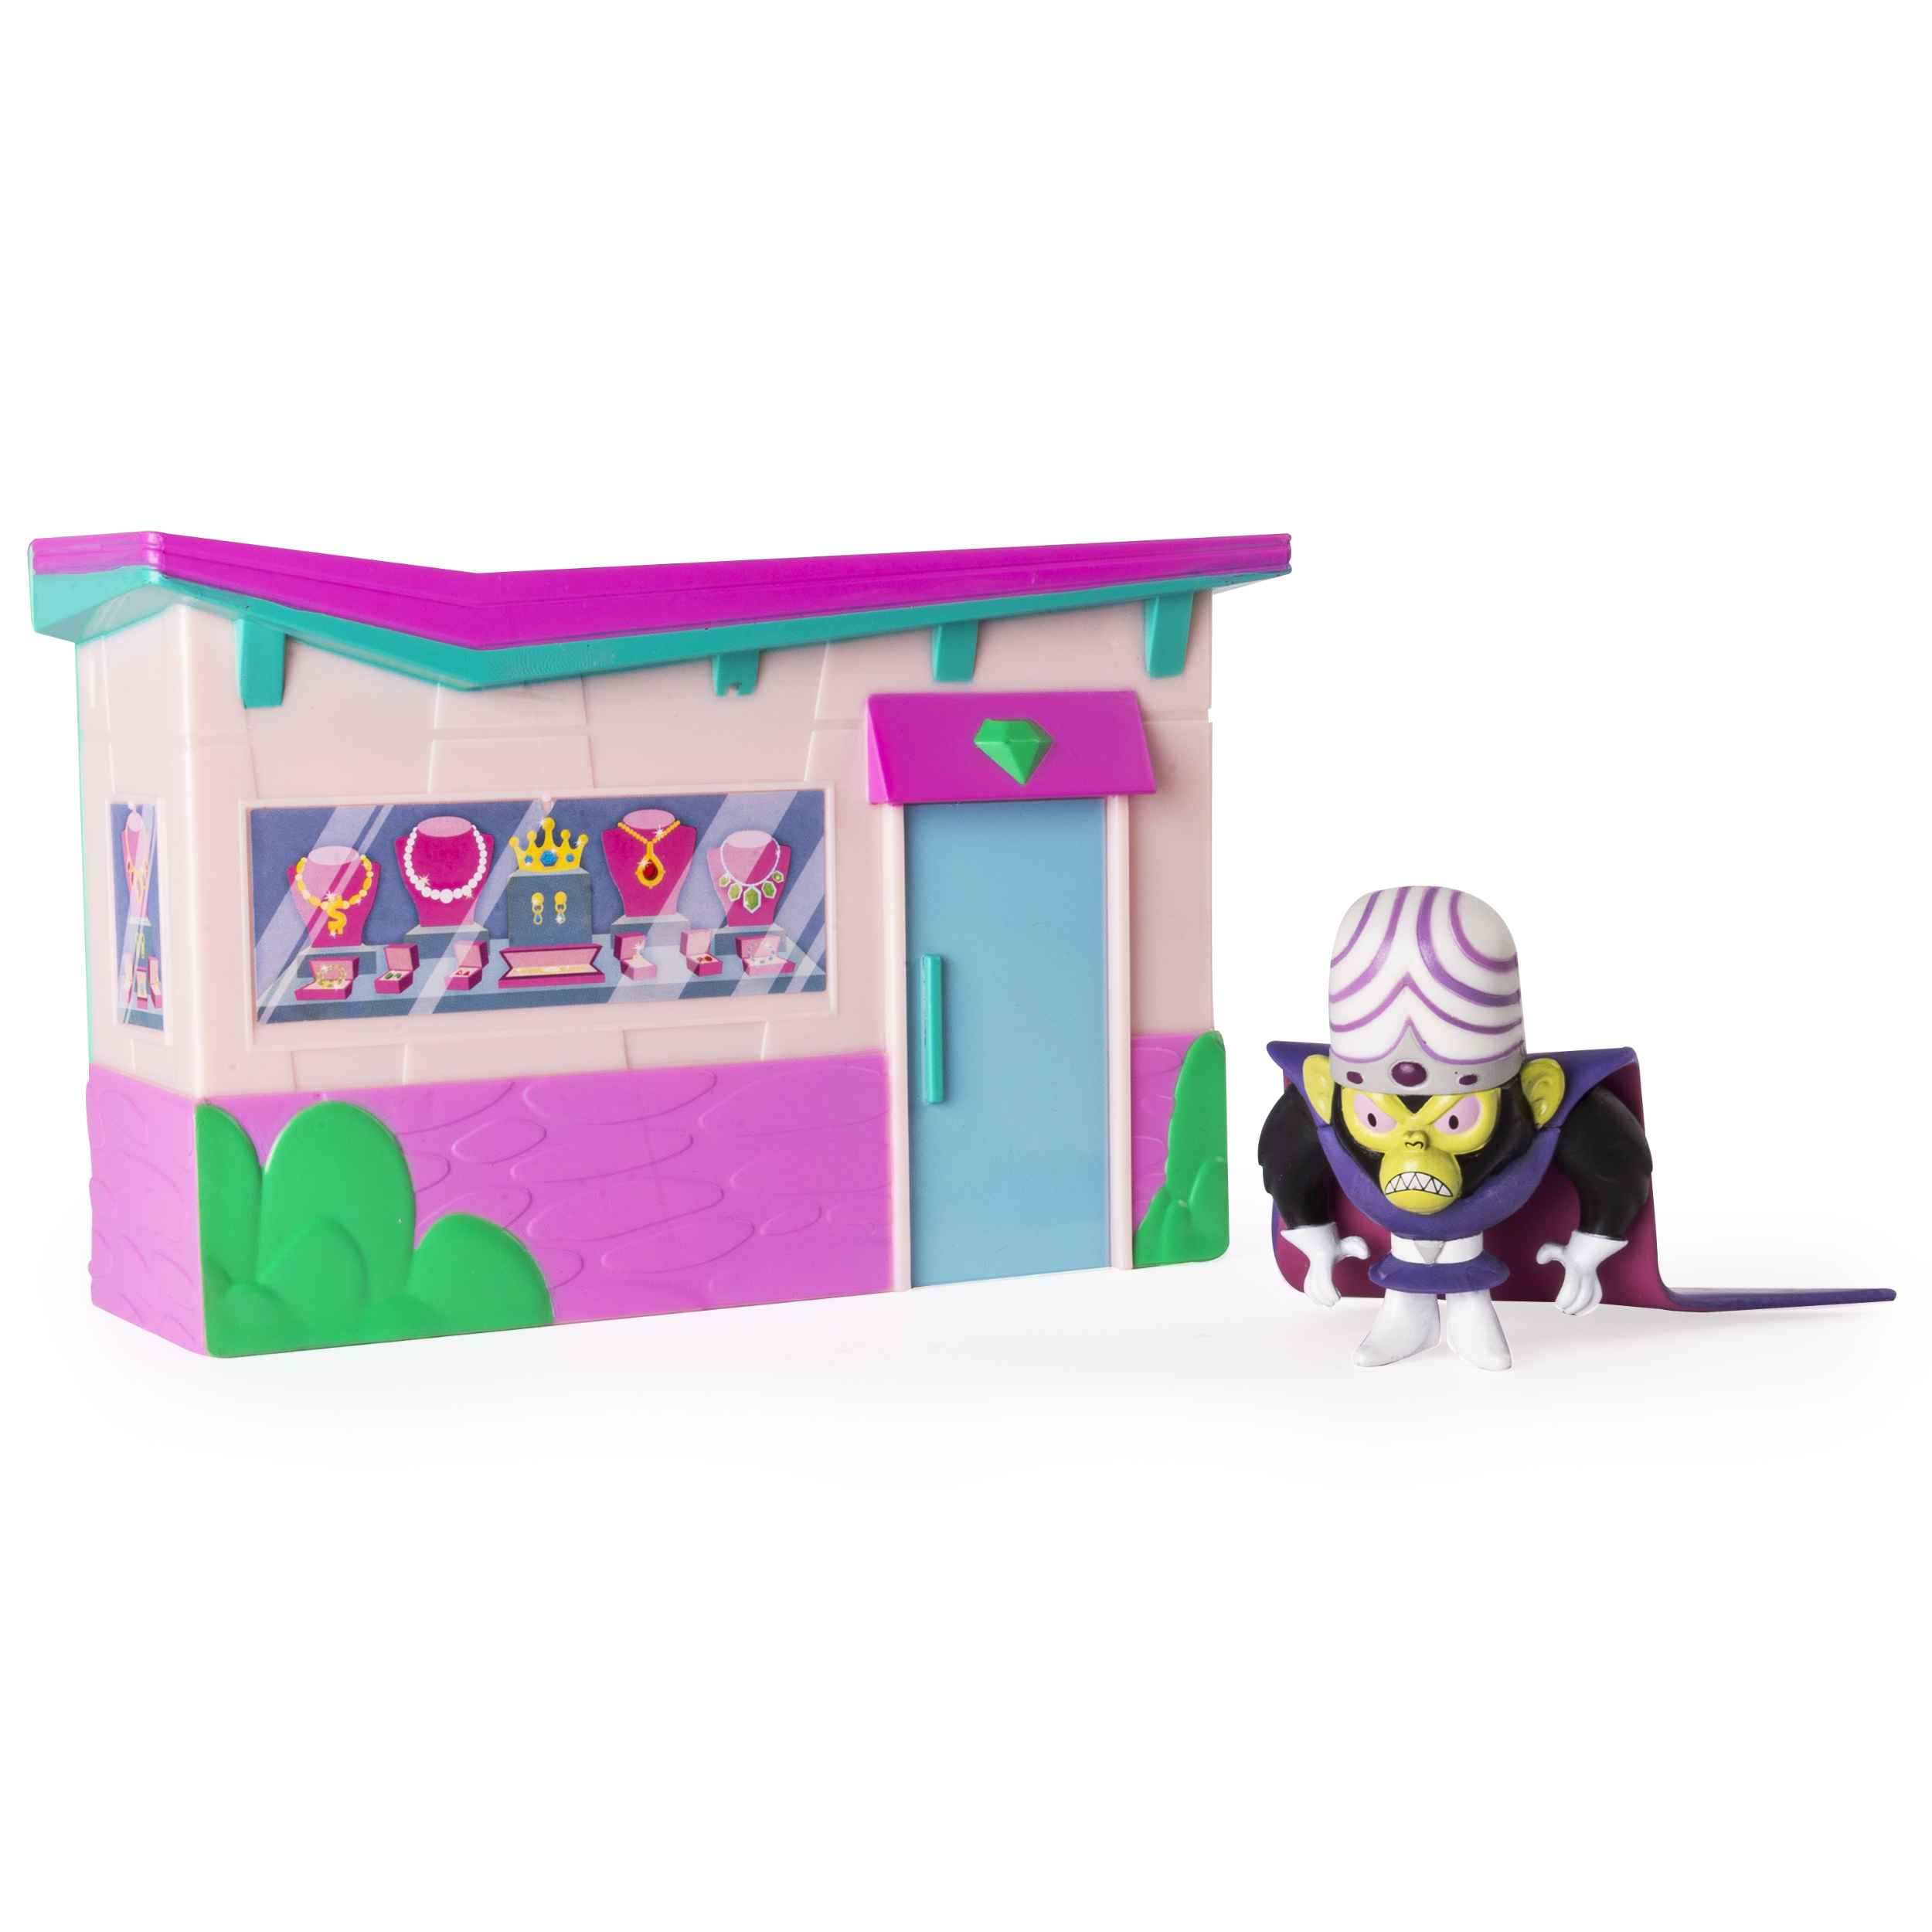 The Powerpuff Girls, Mojo Jojo Jewelry Store Heist Playset, by Spin Master